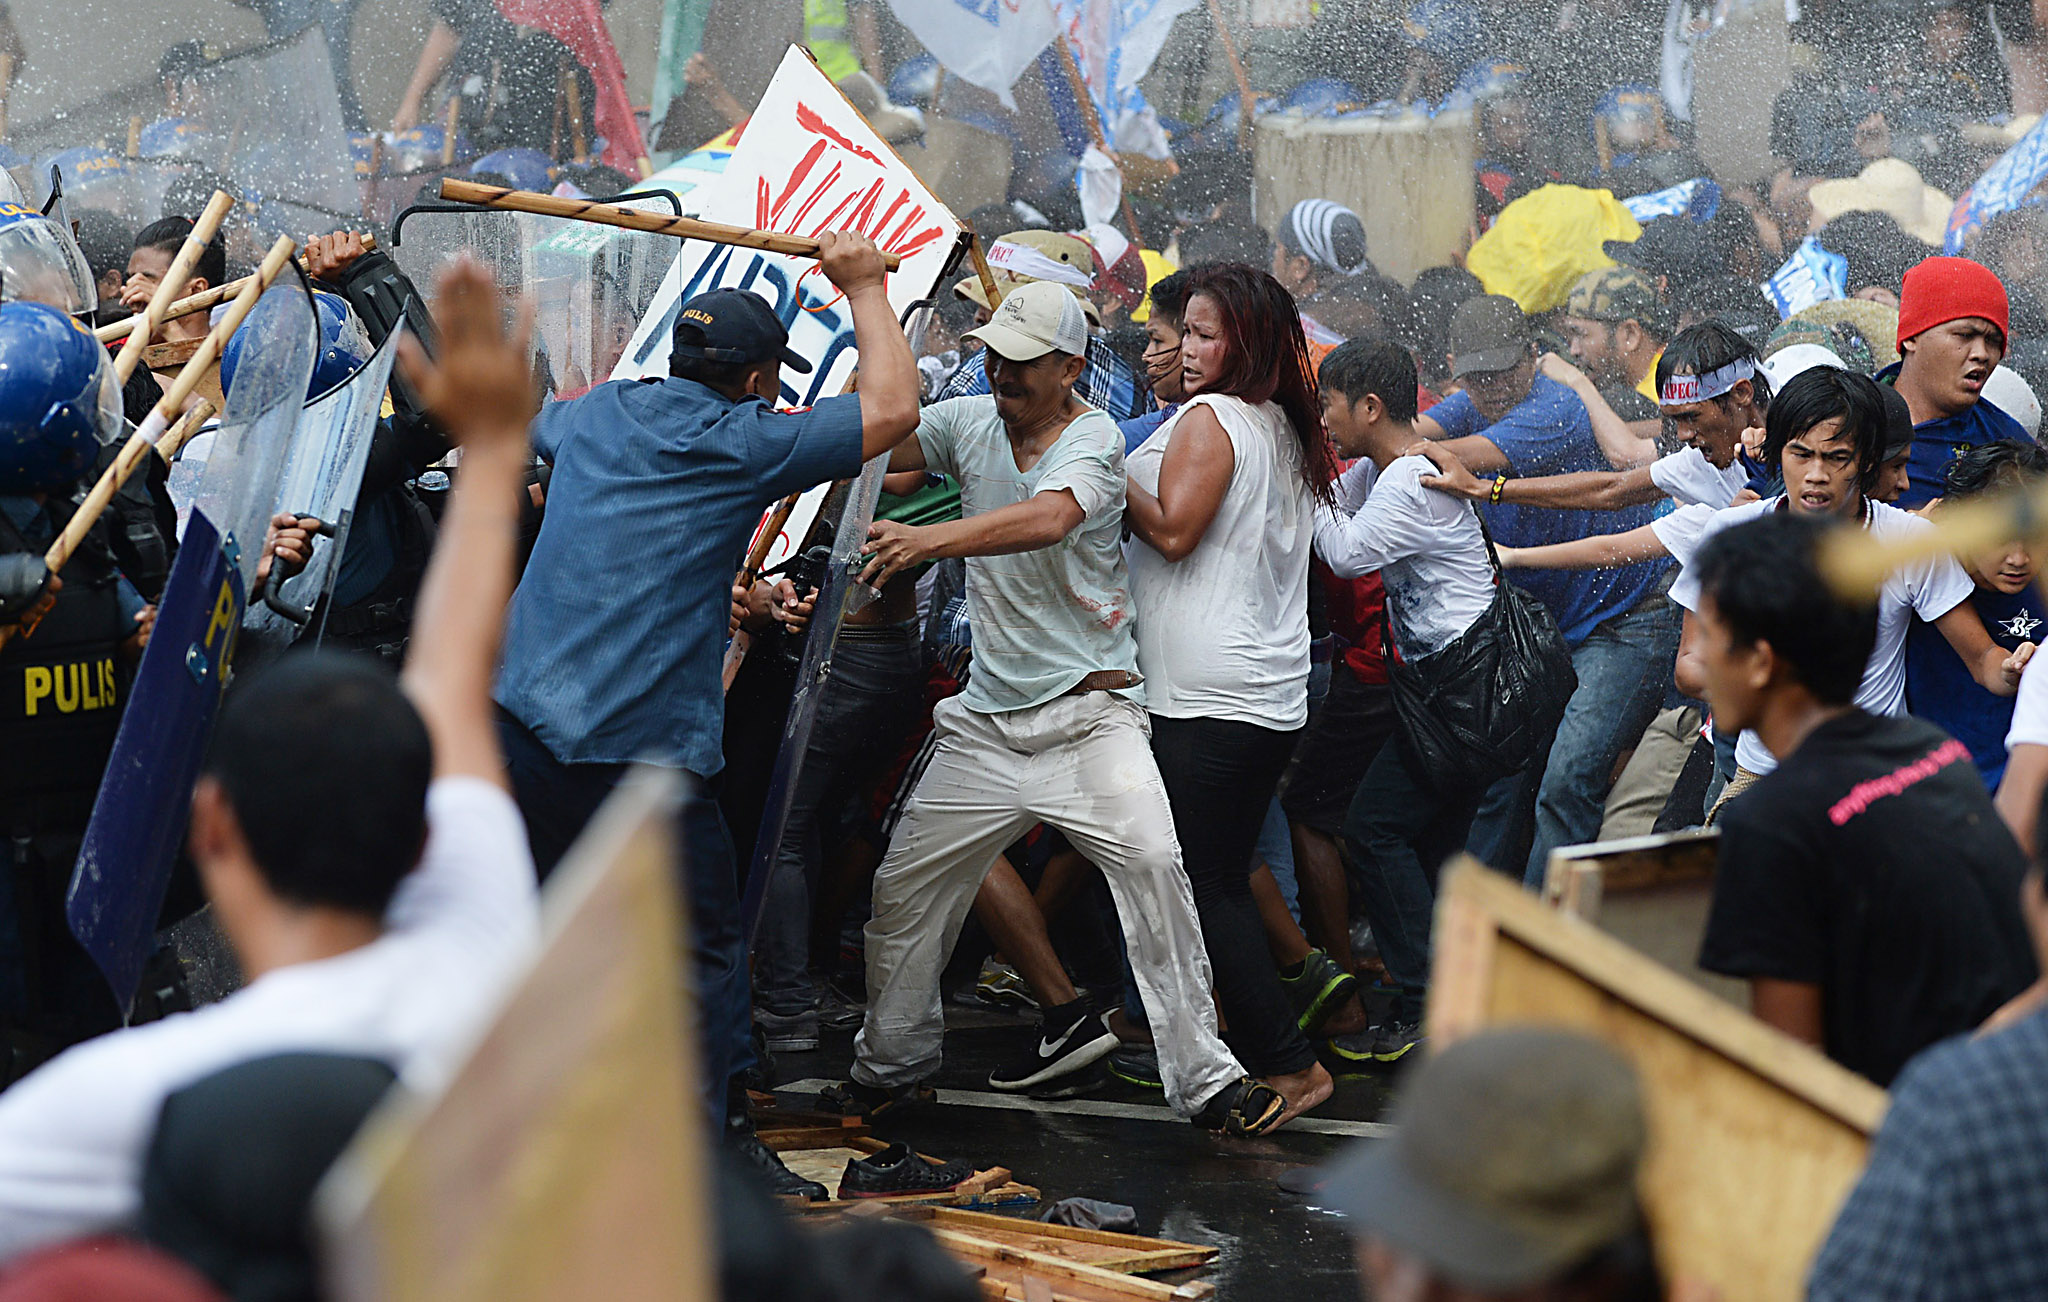 TOPSHOTS Philippine police (L) fire water cannon as they clash with protesters (R) parading down a street trying to voice their opposition to the Asia-Pacific Economic Cooperation (APEC) Summit currently taking place in Manila on November 19, 2015. Asia-Pacific leaders are wrapping up two-days of talks in Manila that have been overshadowed by an arm-wrestle for regional influence between the United States and China. AFP PHOTO / Punit PARANJPEPUNIT PARANJPE/AFP/Getty Images